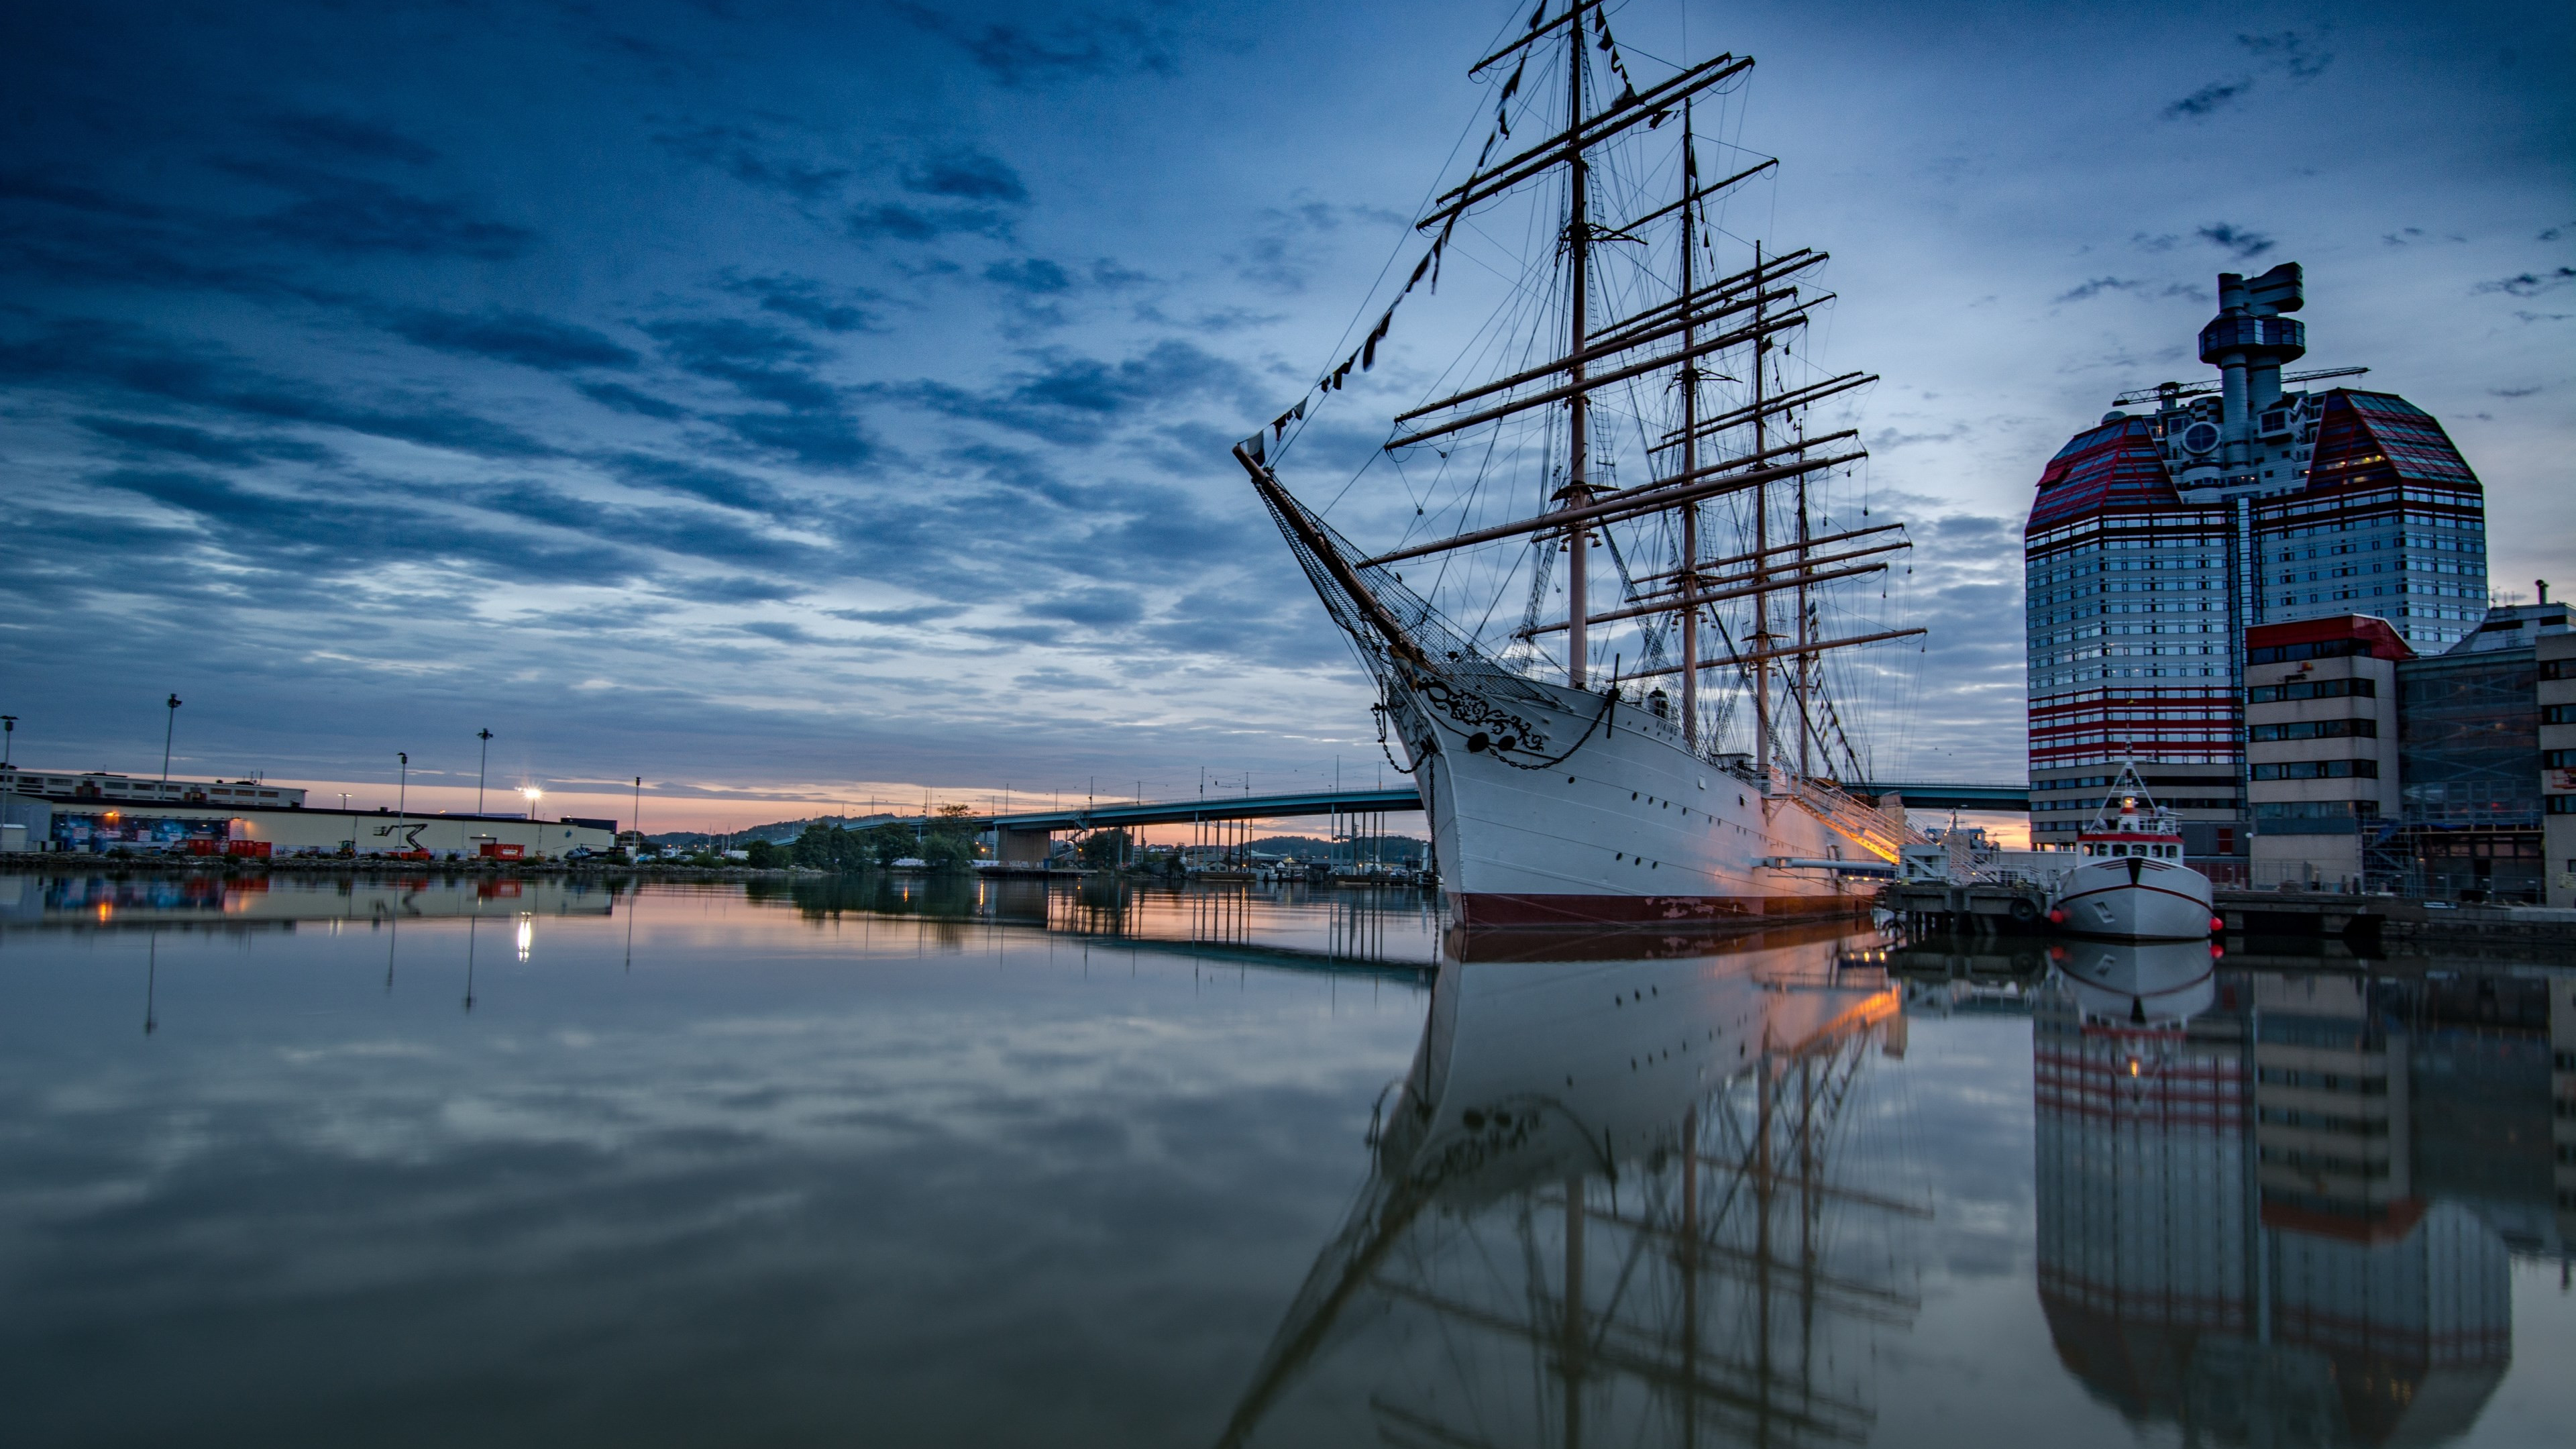 Historic wooden sailing ship in Gothenburg Harbour wallpaper 3840x2160